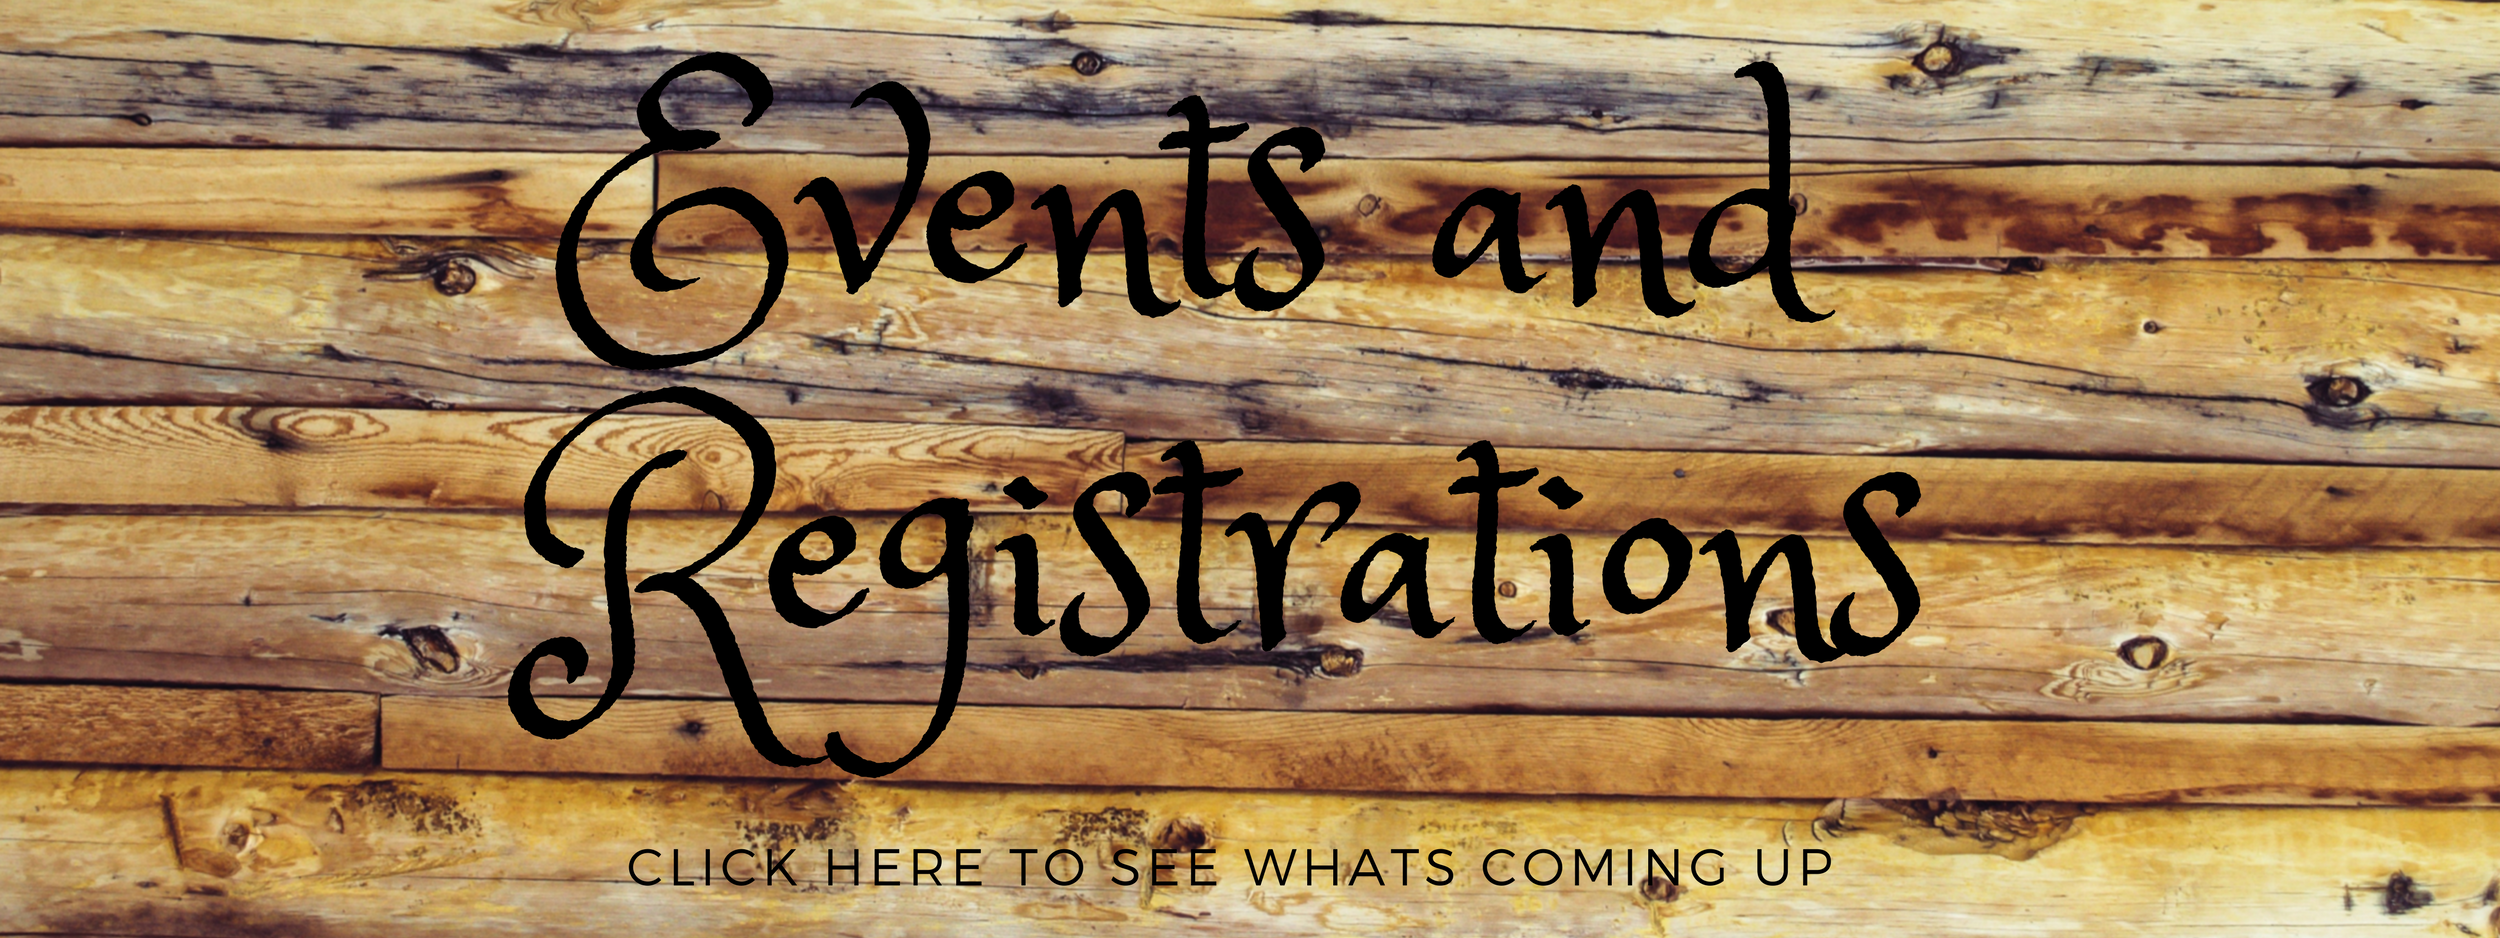 Events and Registrations-2.png